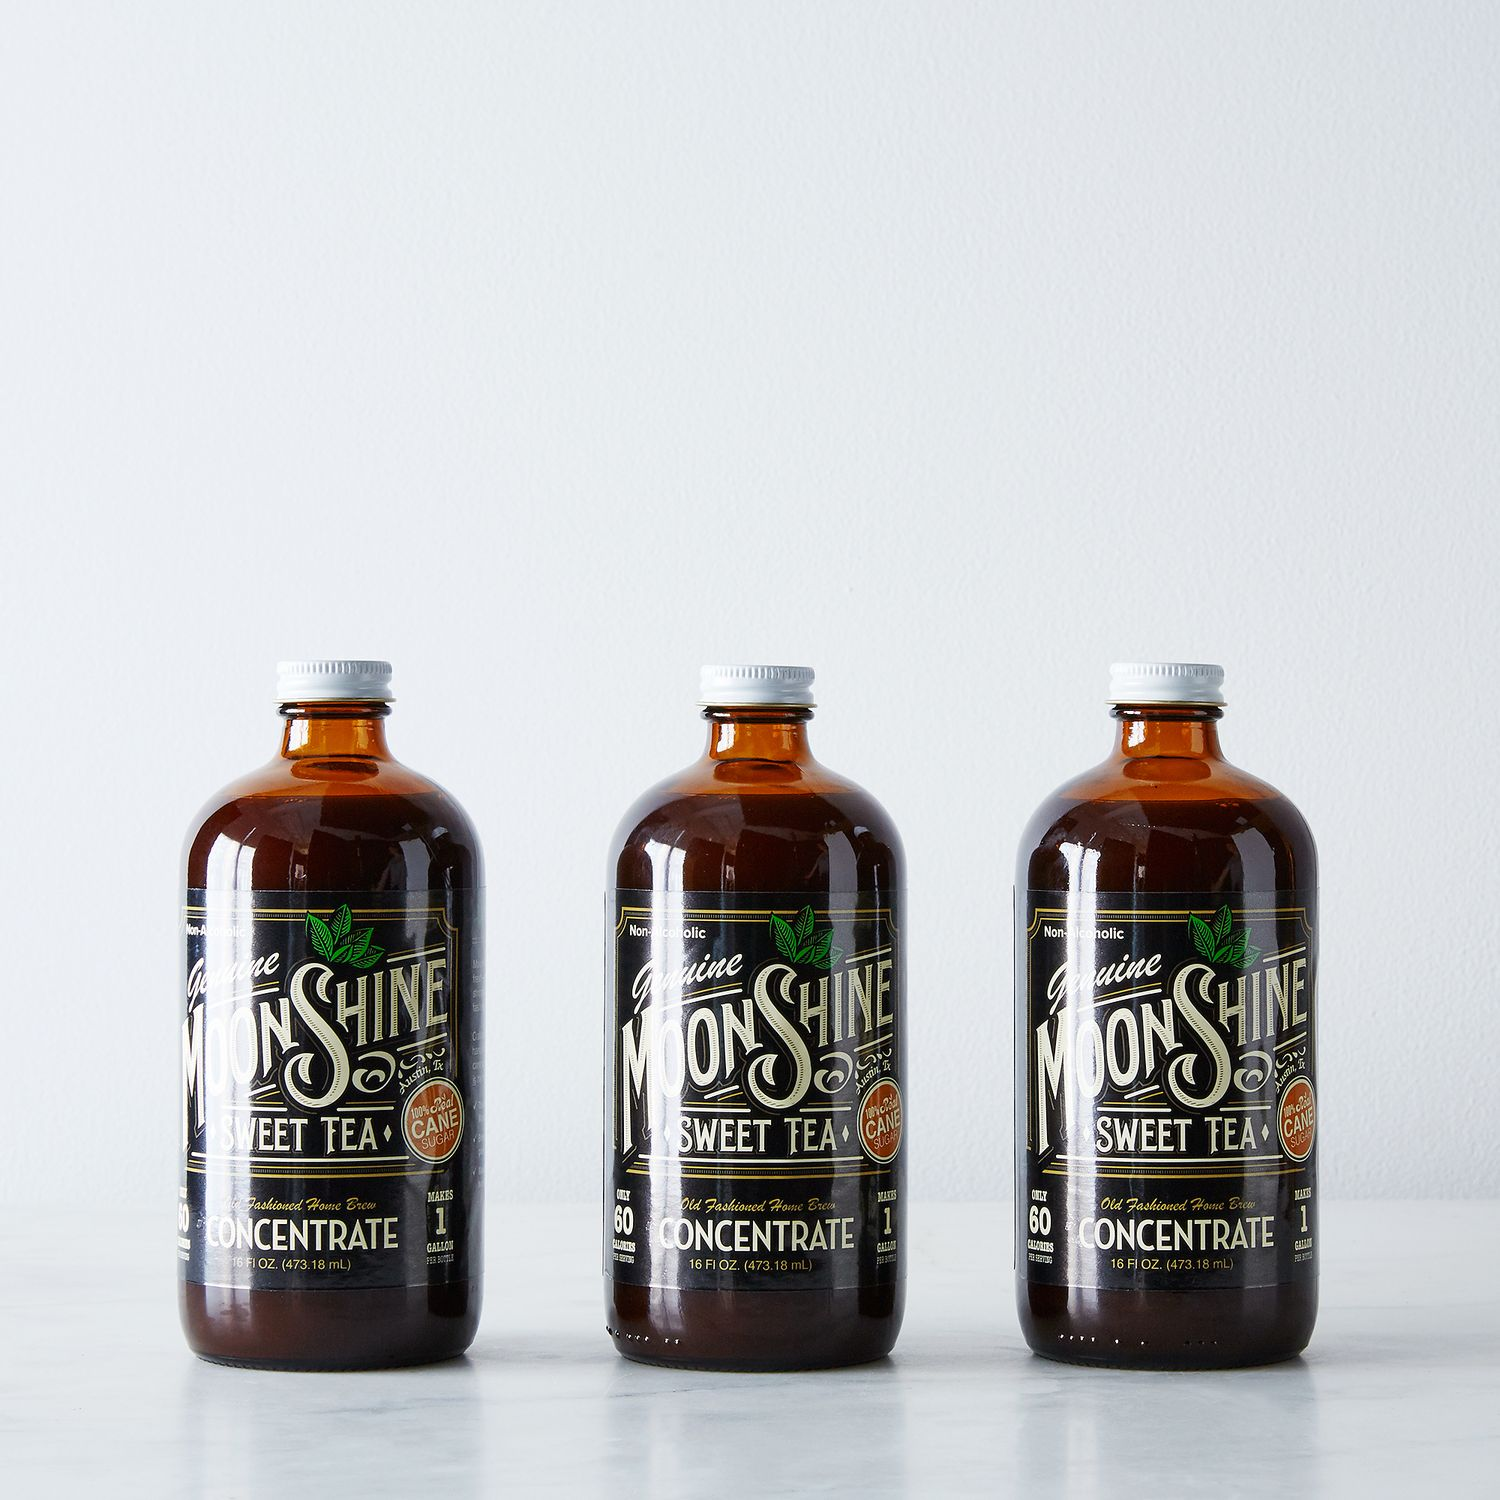 ... sweet-tea_old-fashioned-sweet-tea-concentrate_set-of-3_silo_james